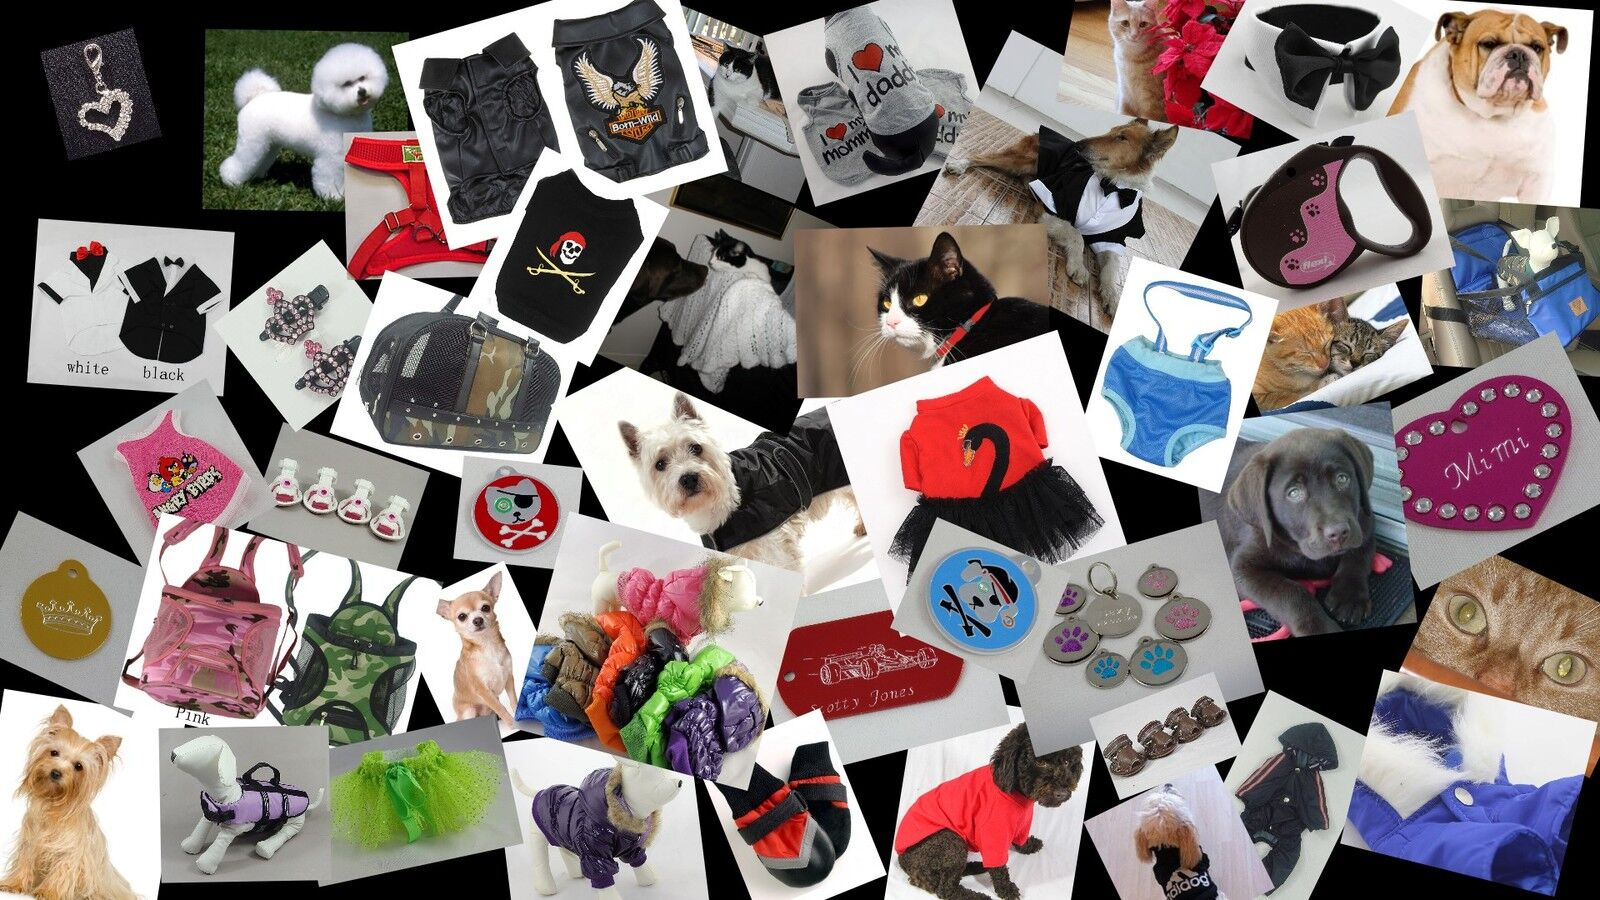 tootsies-boutique-dog-clothes-acces